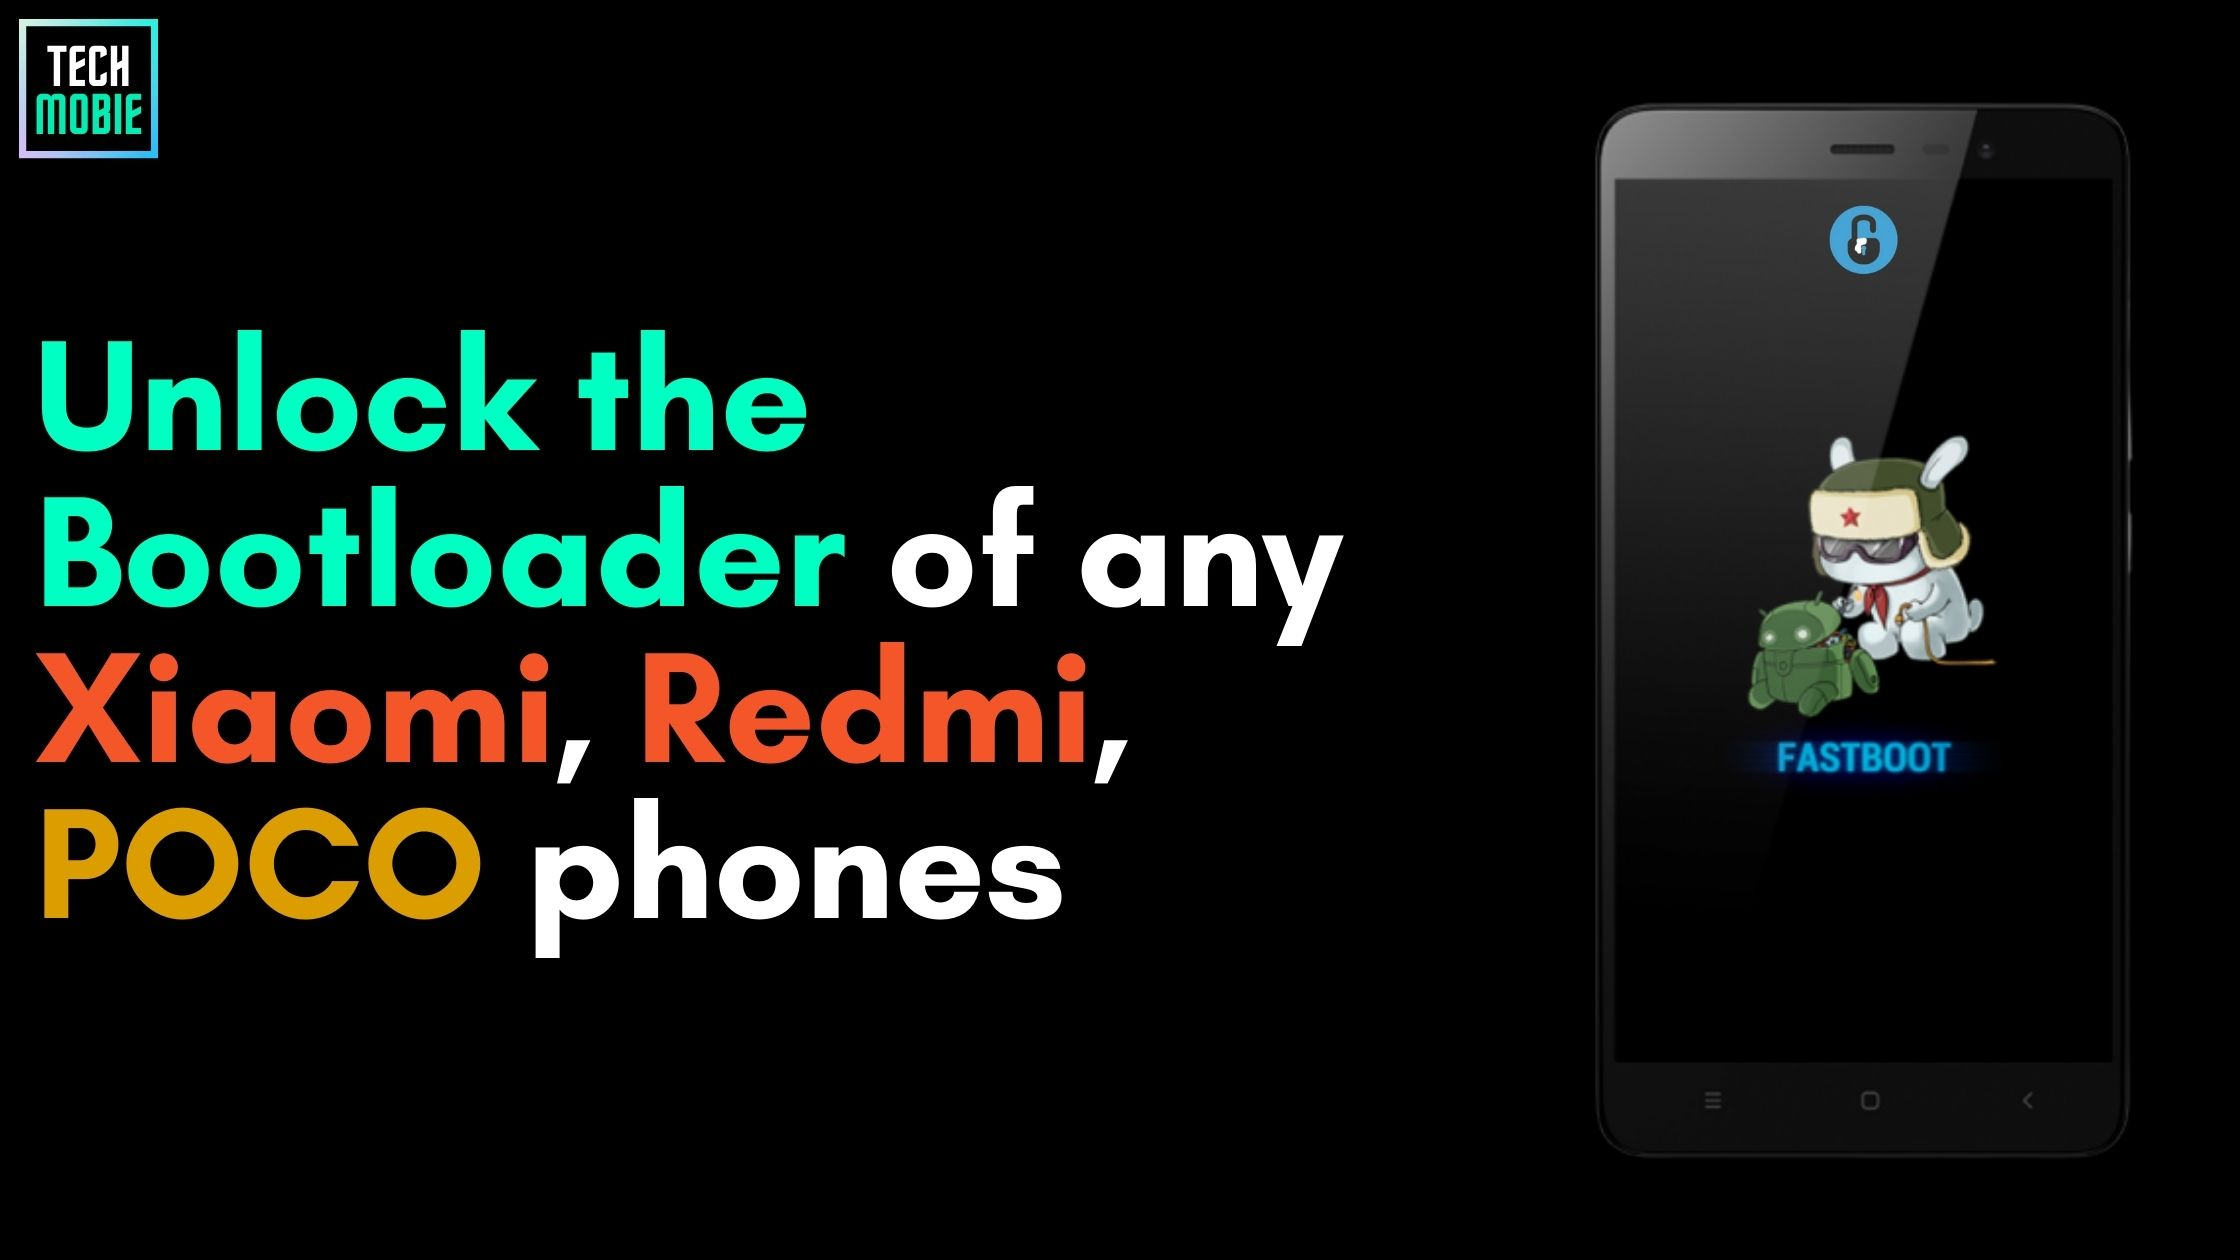 Unlock Bootloader of any Xioami, Redmi and Poco phones.